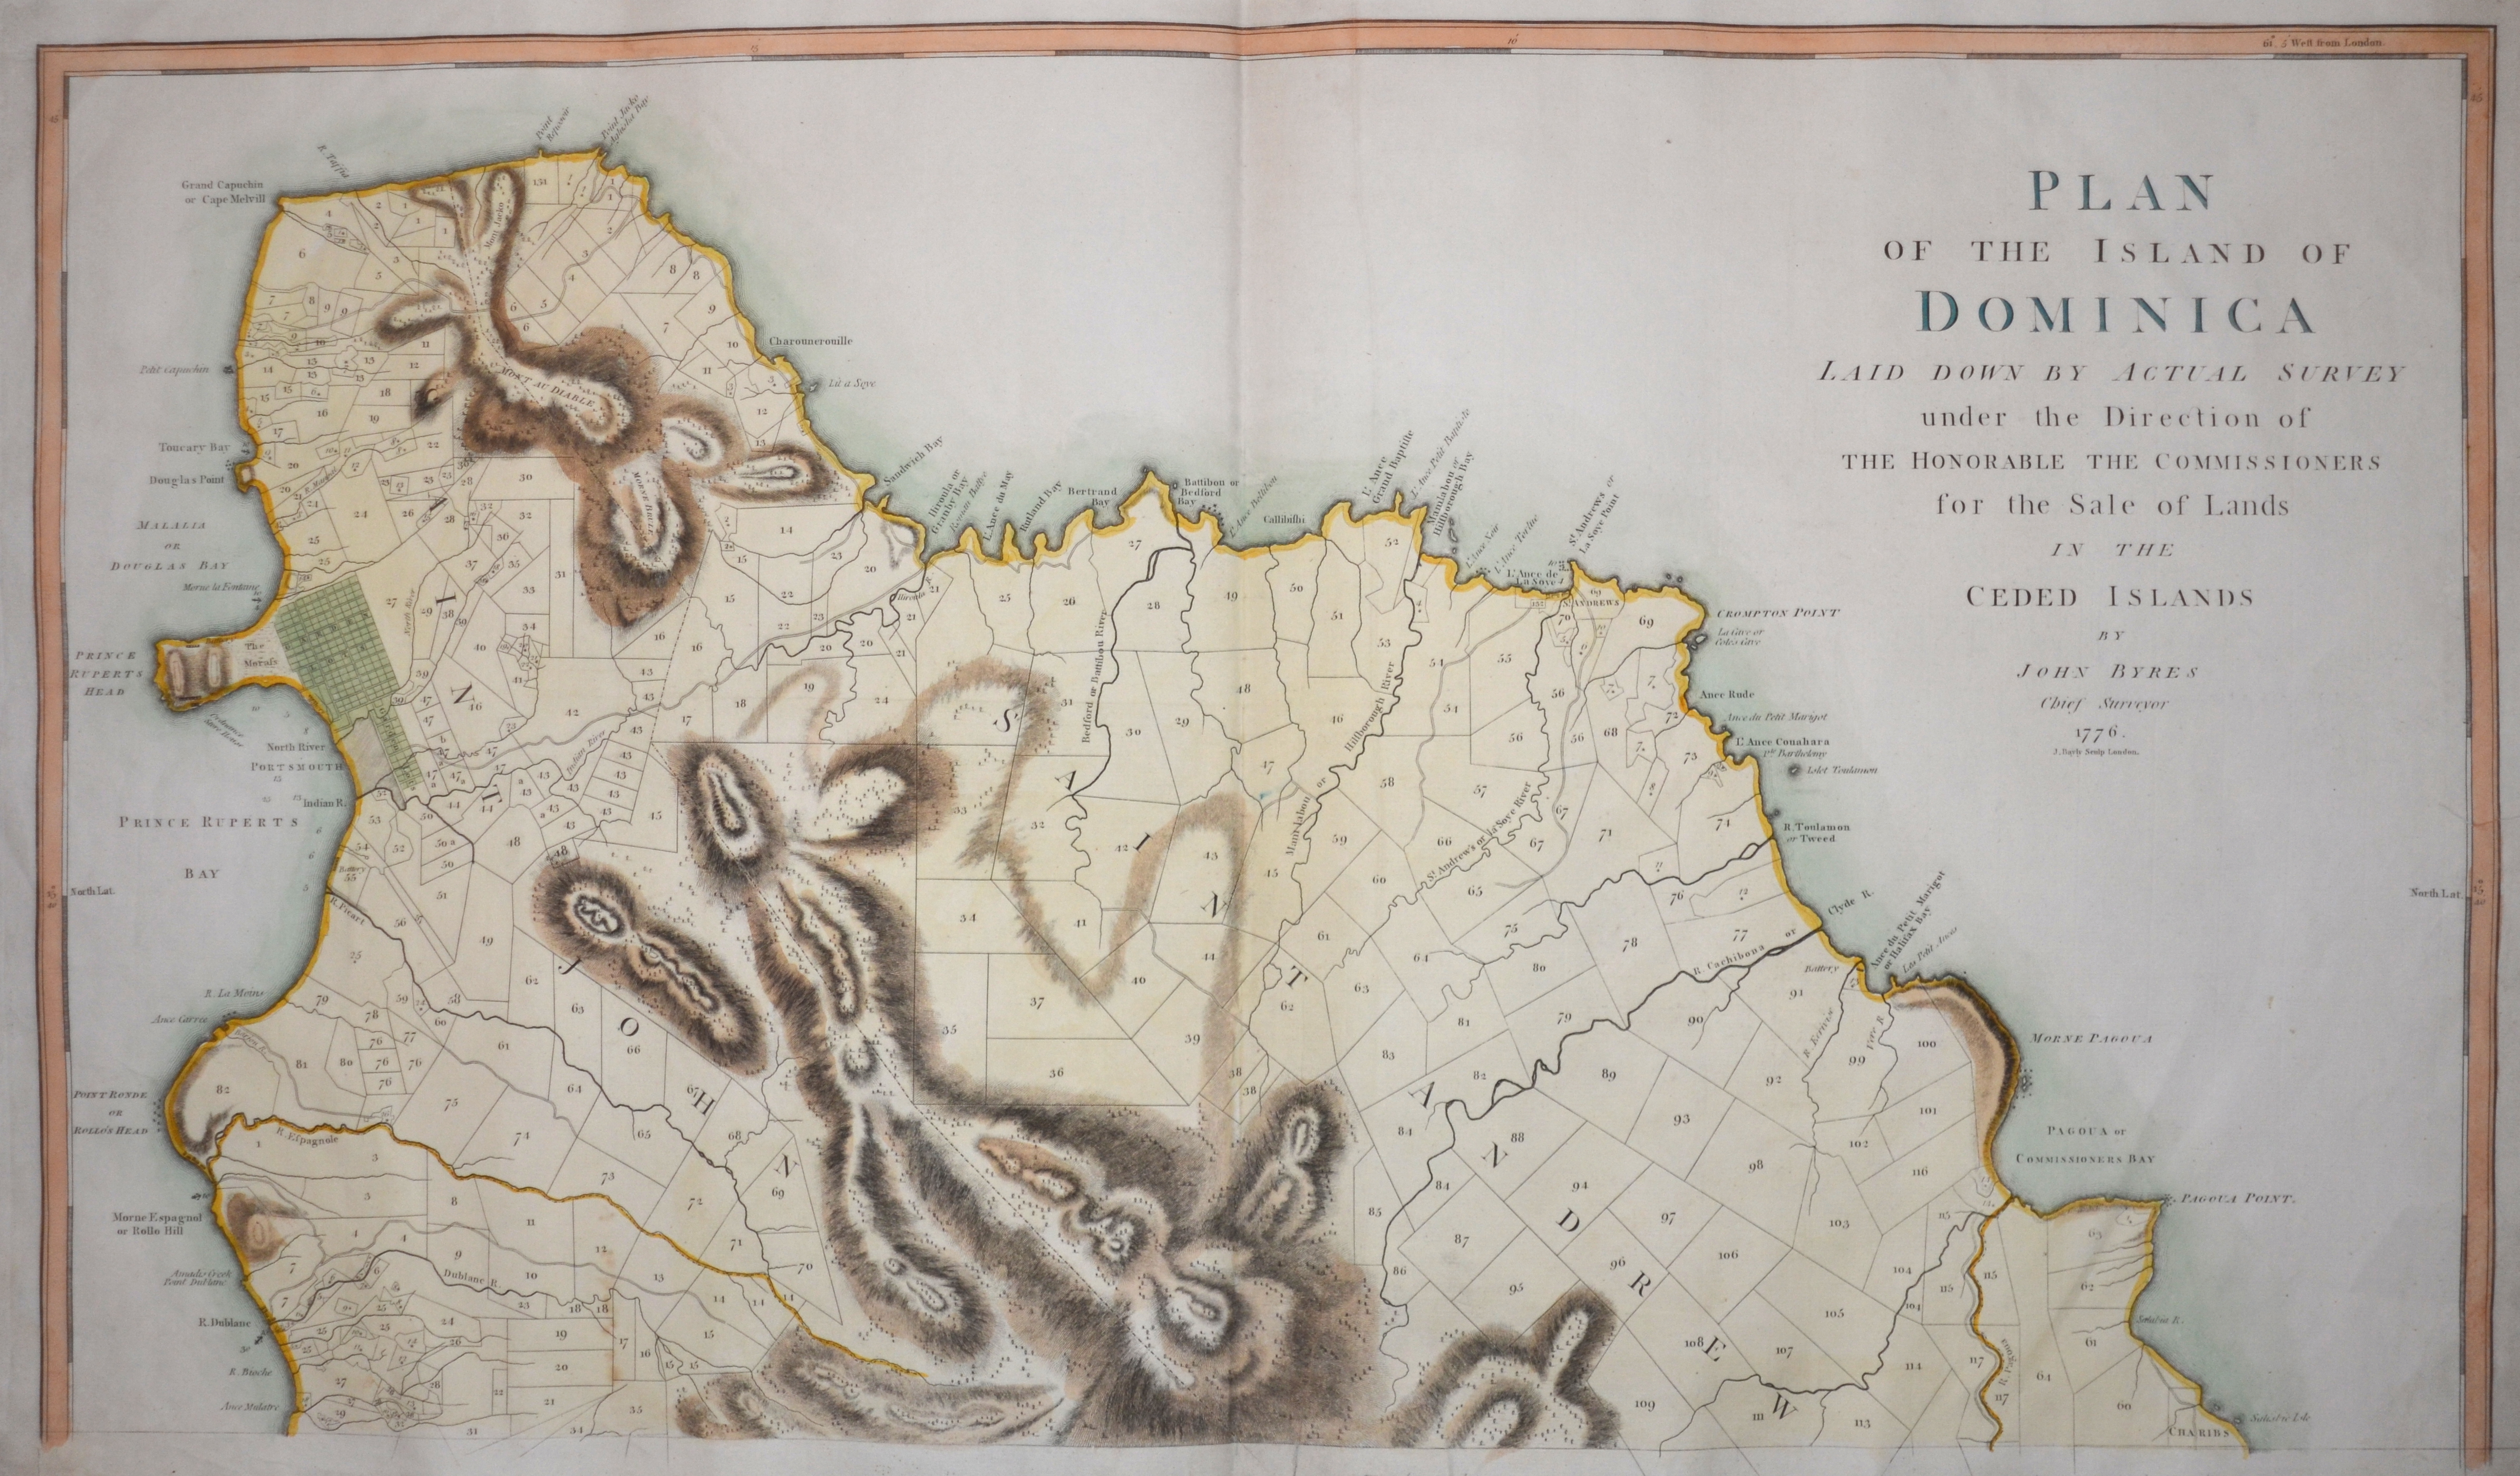 Bylly J. Plan of the Island of Dominica. Laid down by actual survey under the Direction of the honorable the commissioners for the Sale of Lands in the Ceded